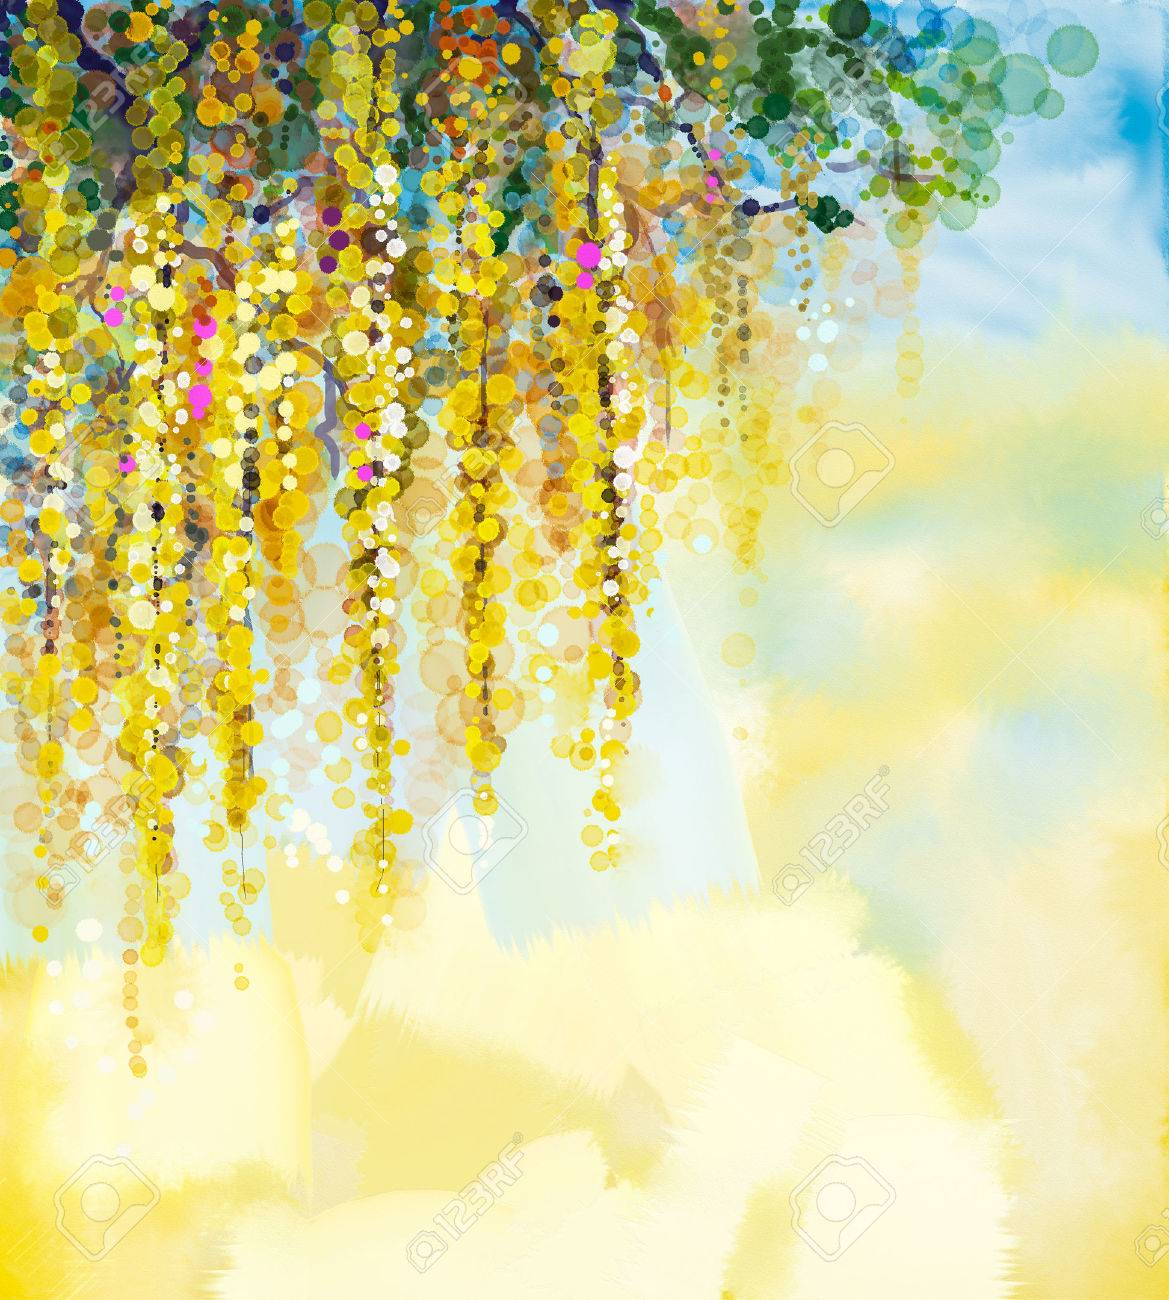 Abstract flowers watercolor painting spring yellow flowers wisteria abstract flowers watercolor painting spring yellow flowers wisteria with soft yellow and blue color background mightylinksfo